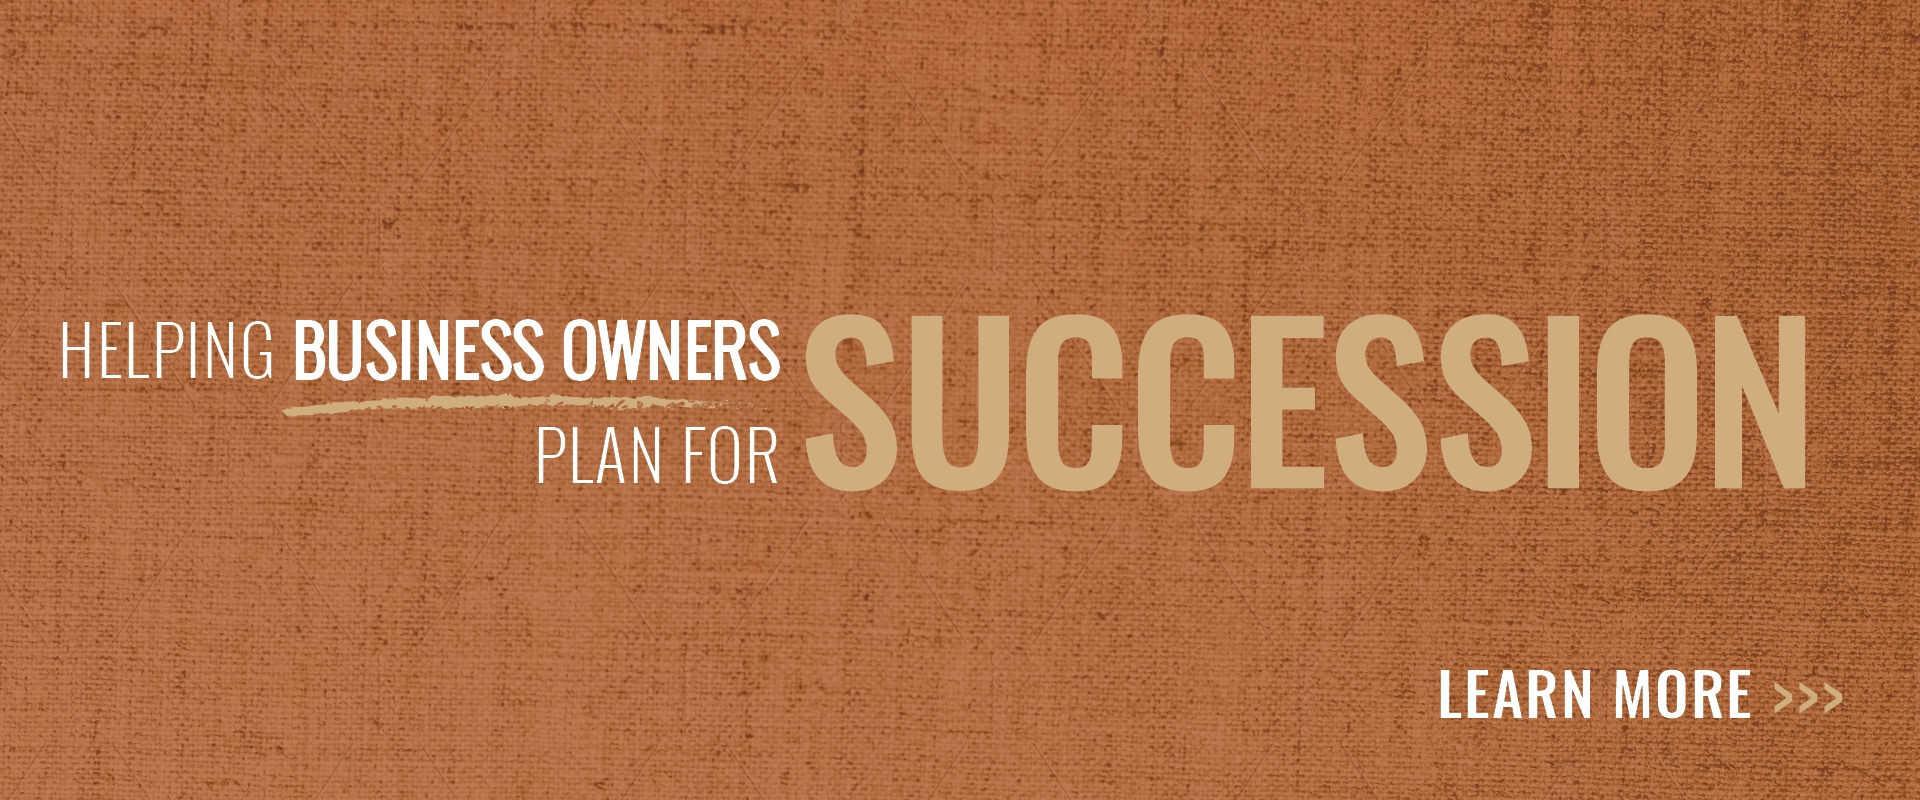 Helping business owners plan for succession Banner